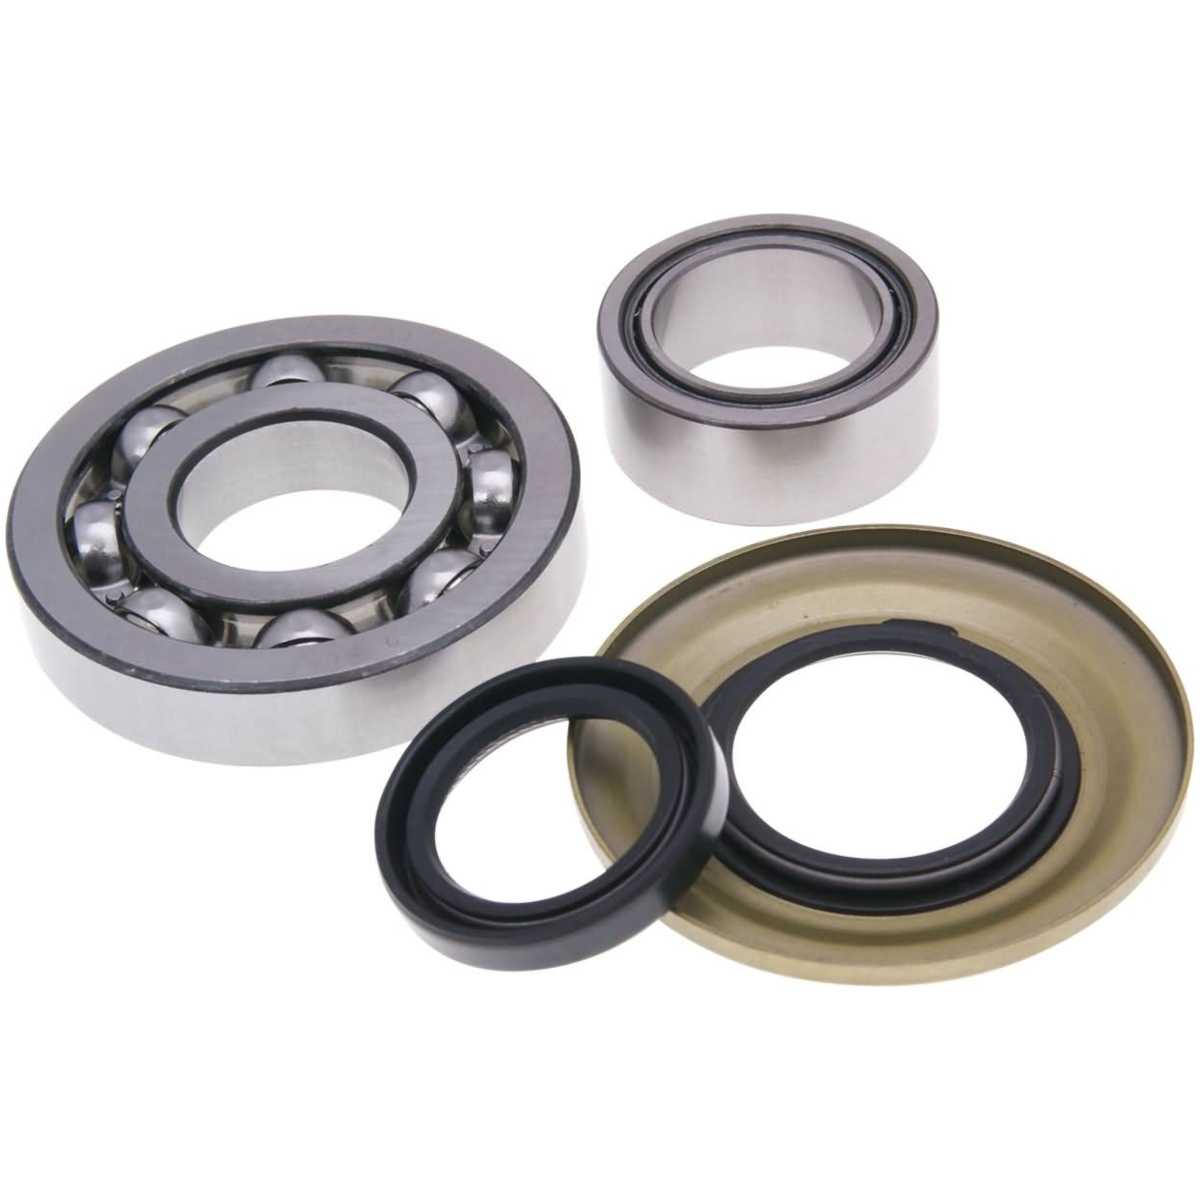 SKF C4 Crankshaft Bearing Set with Shaft Seals Hi-Quality Metal Cage Derbi Senda D50B0 EBE EBS